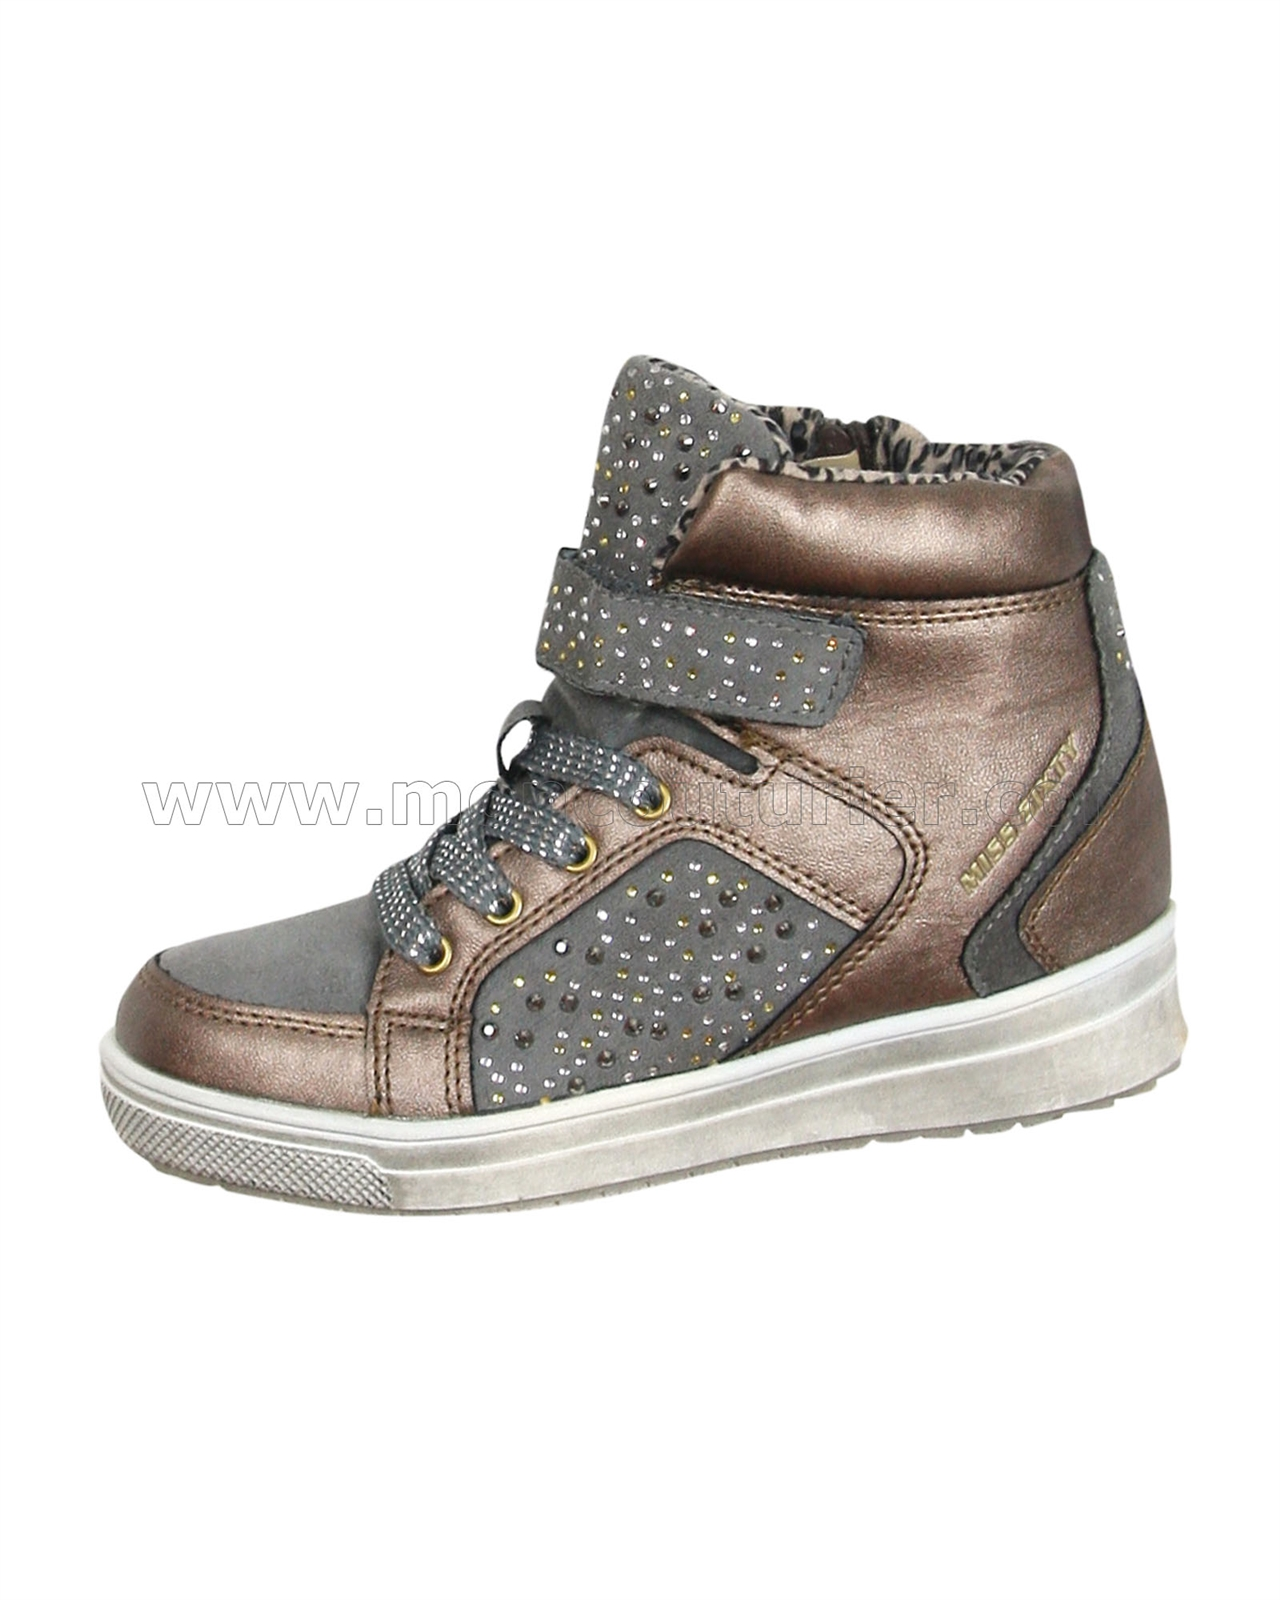 635fc0984d Miss Sixty Girls' Hi-top Sneakers with Crystals